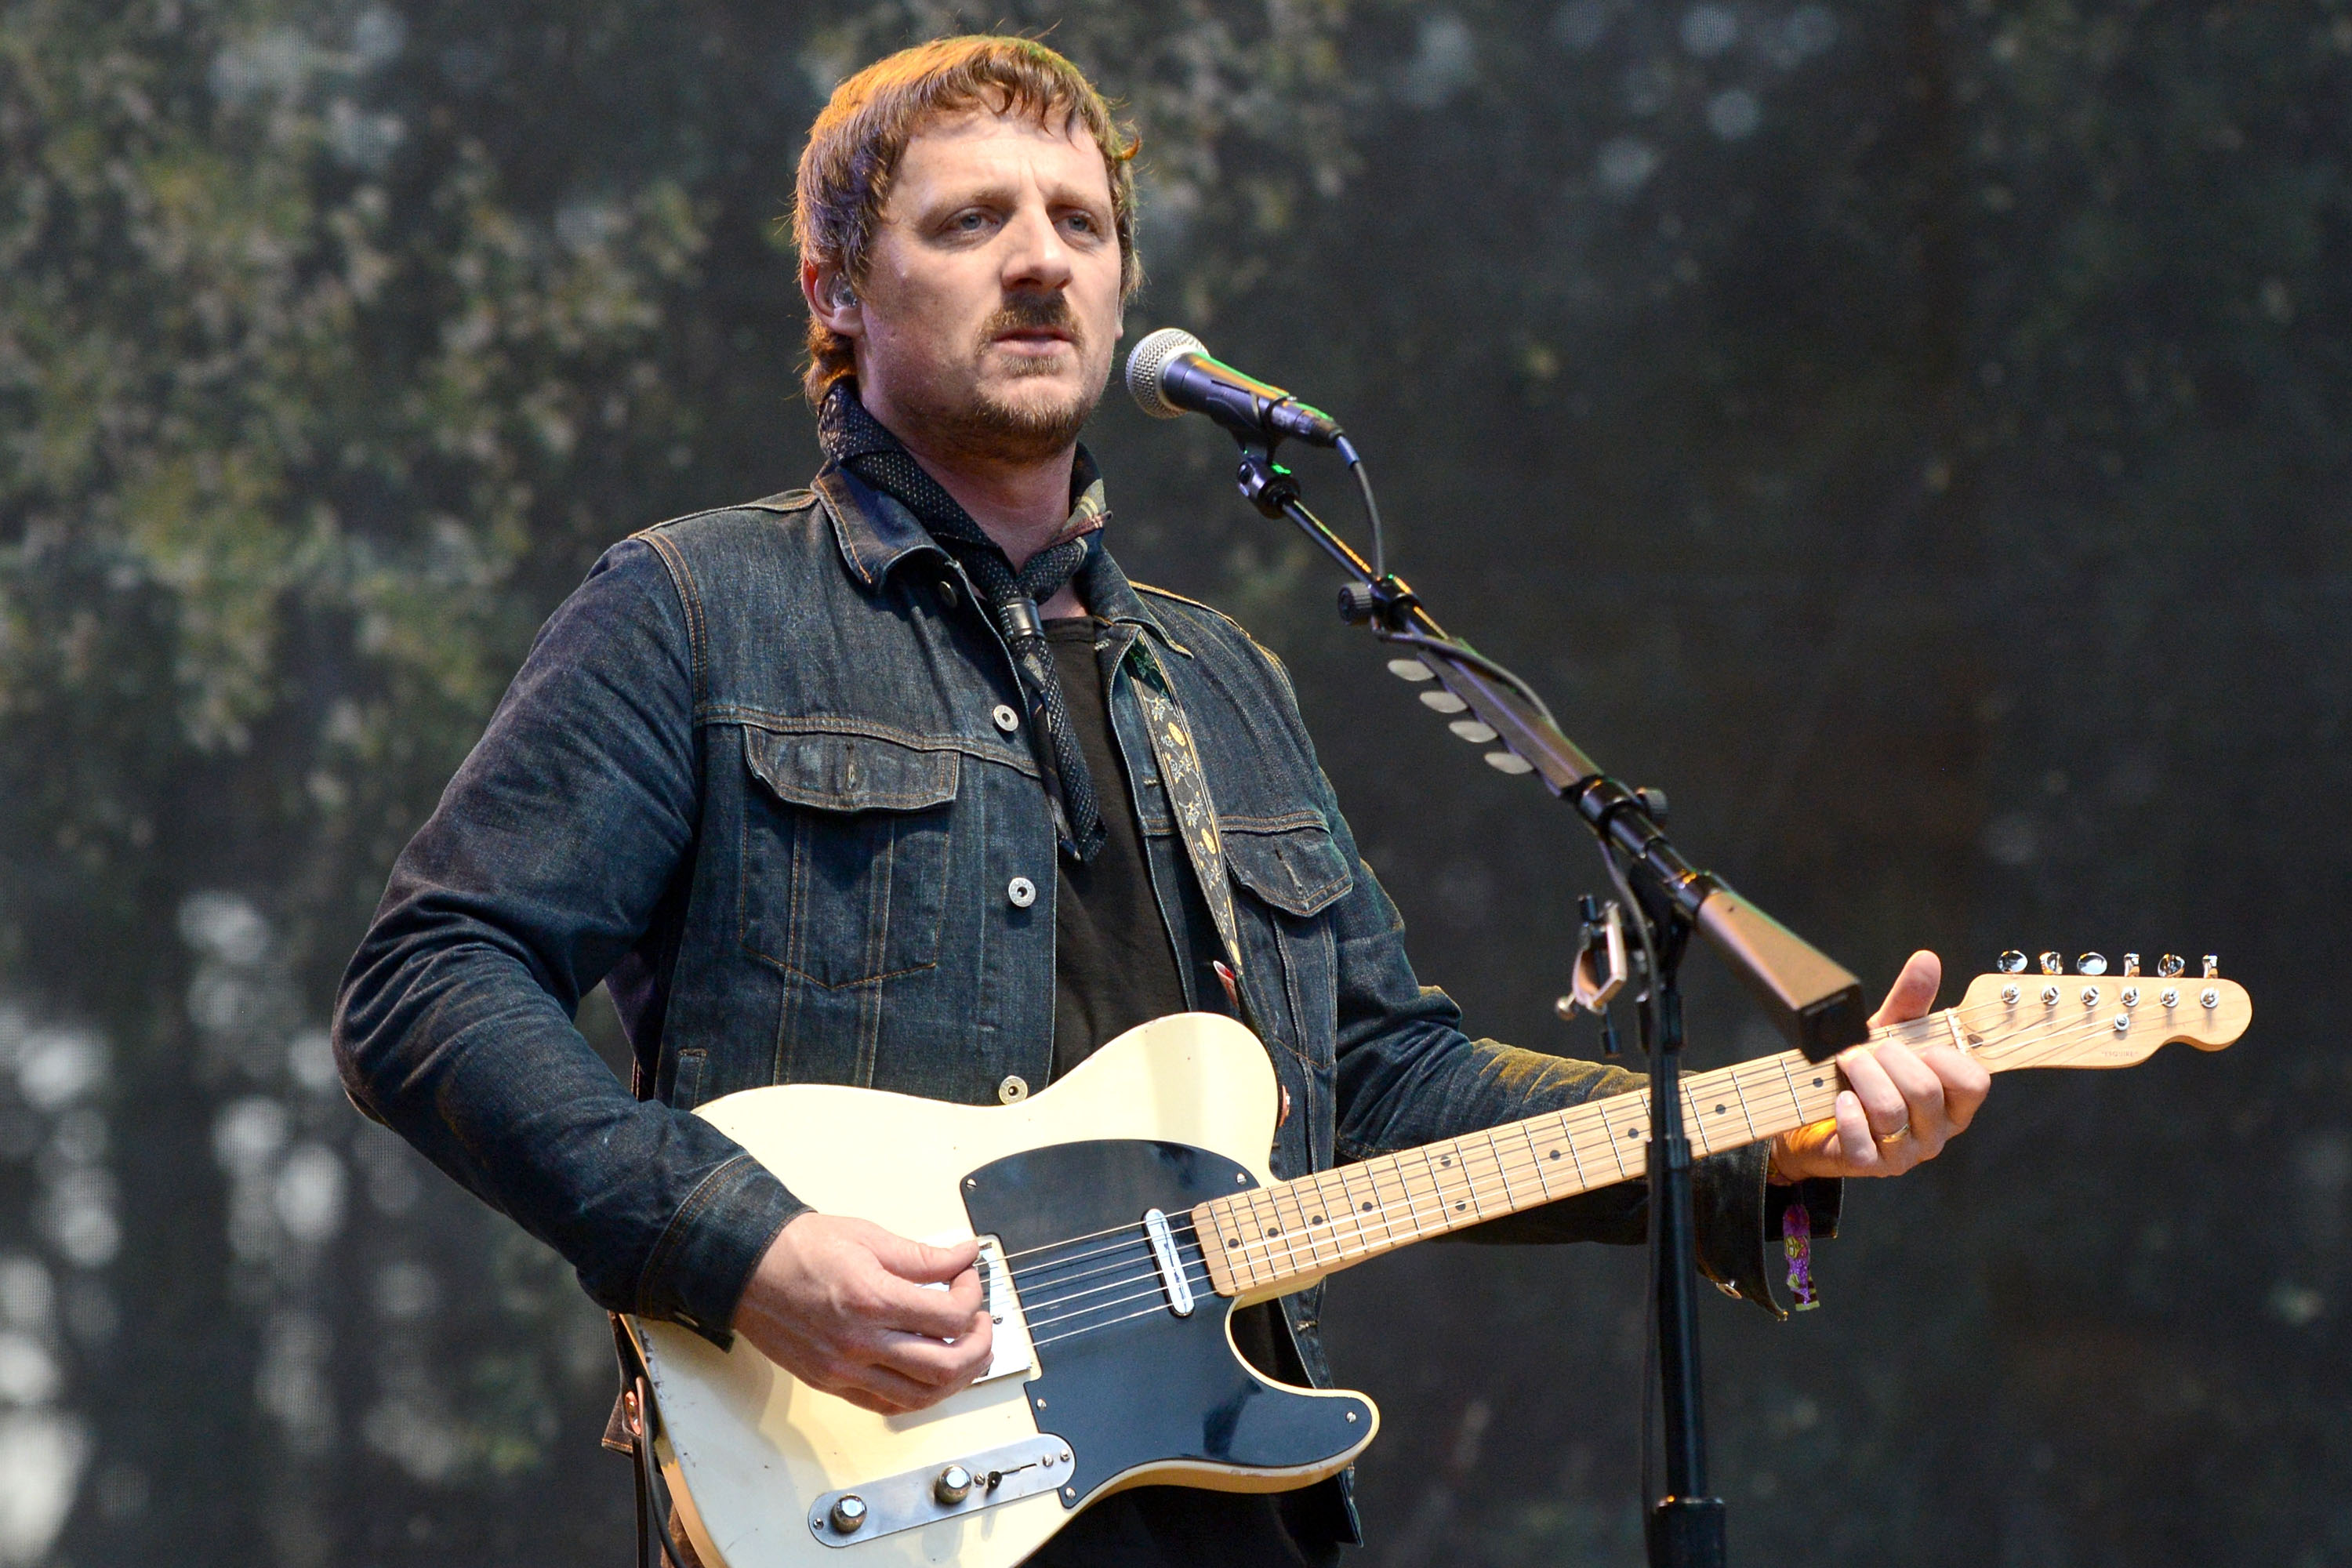 Singer Sturgill Simpson performs onstage during the Hardly Strictly Bluegrass music festival at Golden Gate Park on October 7, 2017 in San Francisco, California.